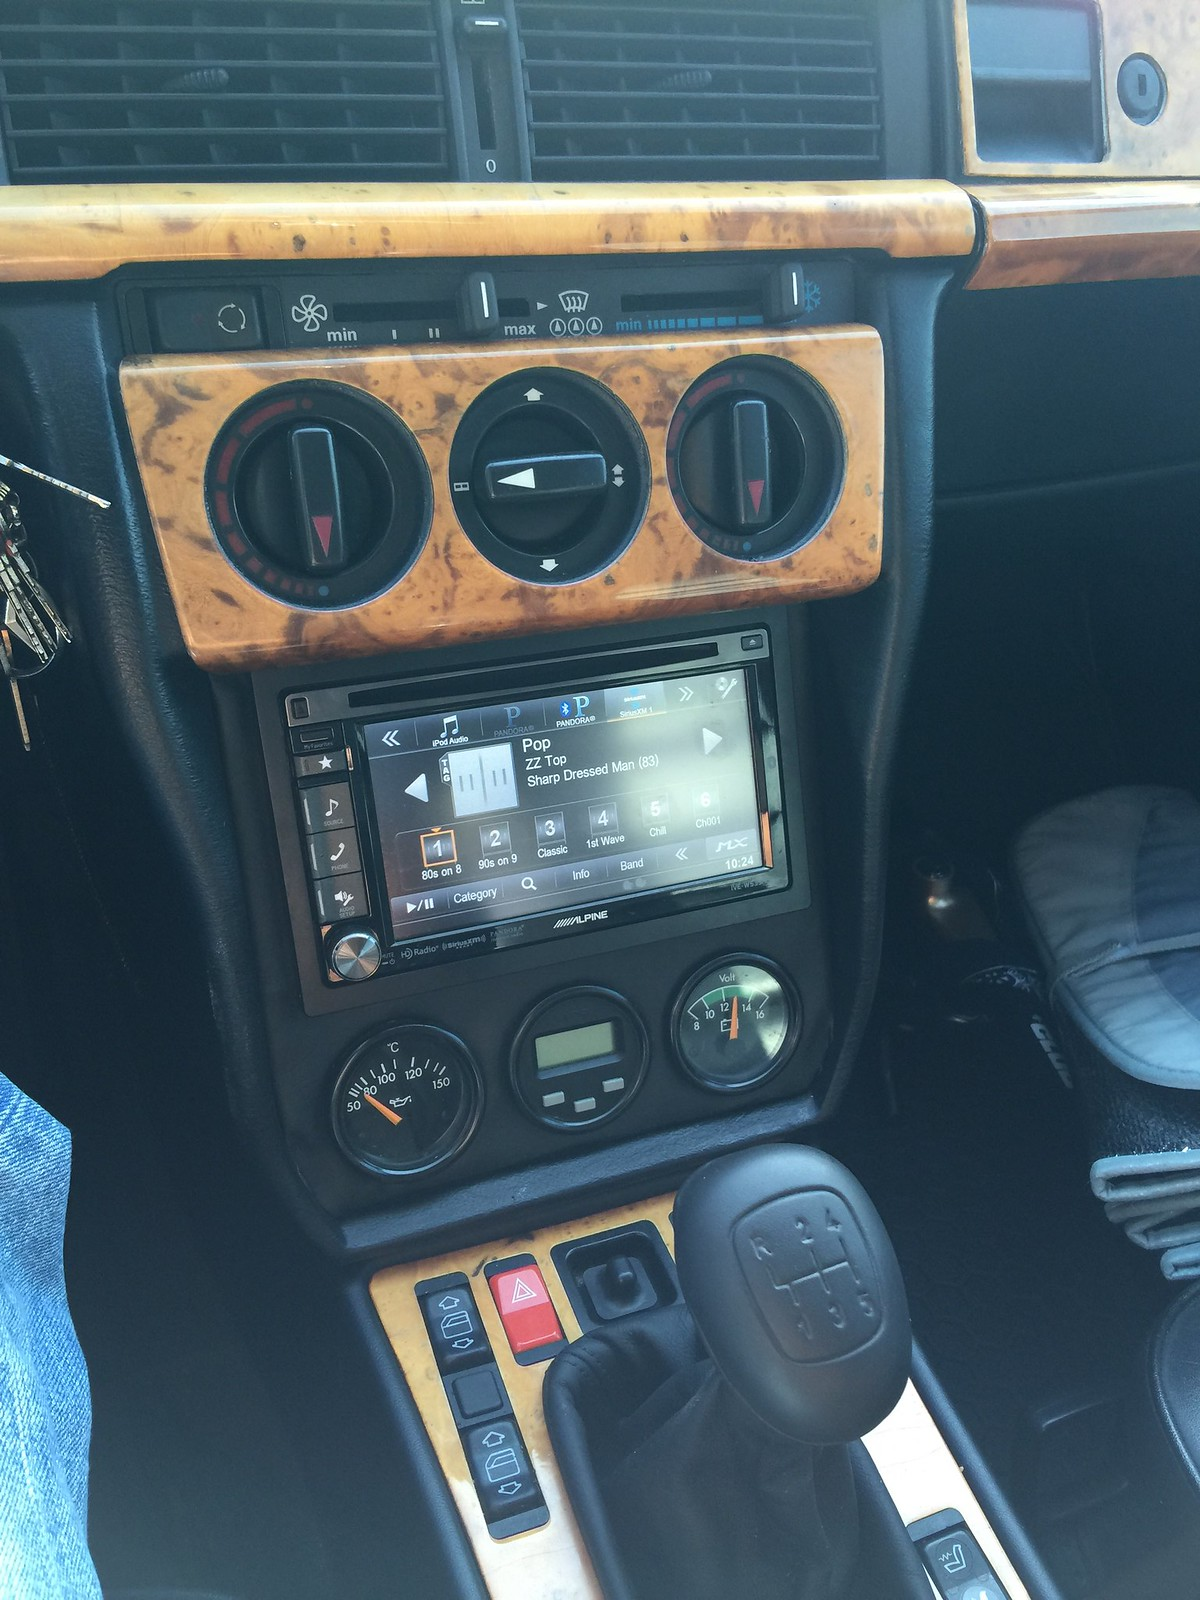 San Antonio Dodge >> Why did the later 190's have a different radio from the other models? - Page 2 - Mercedes-Benz Forum